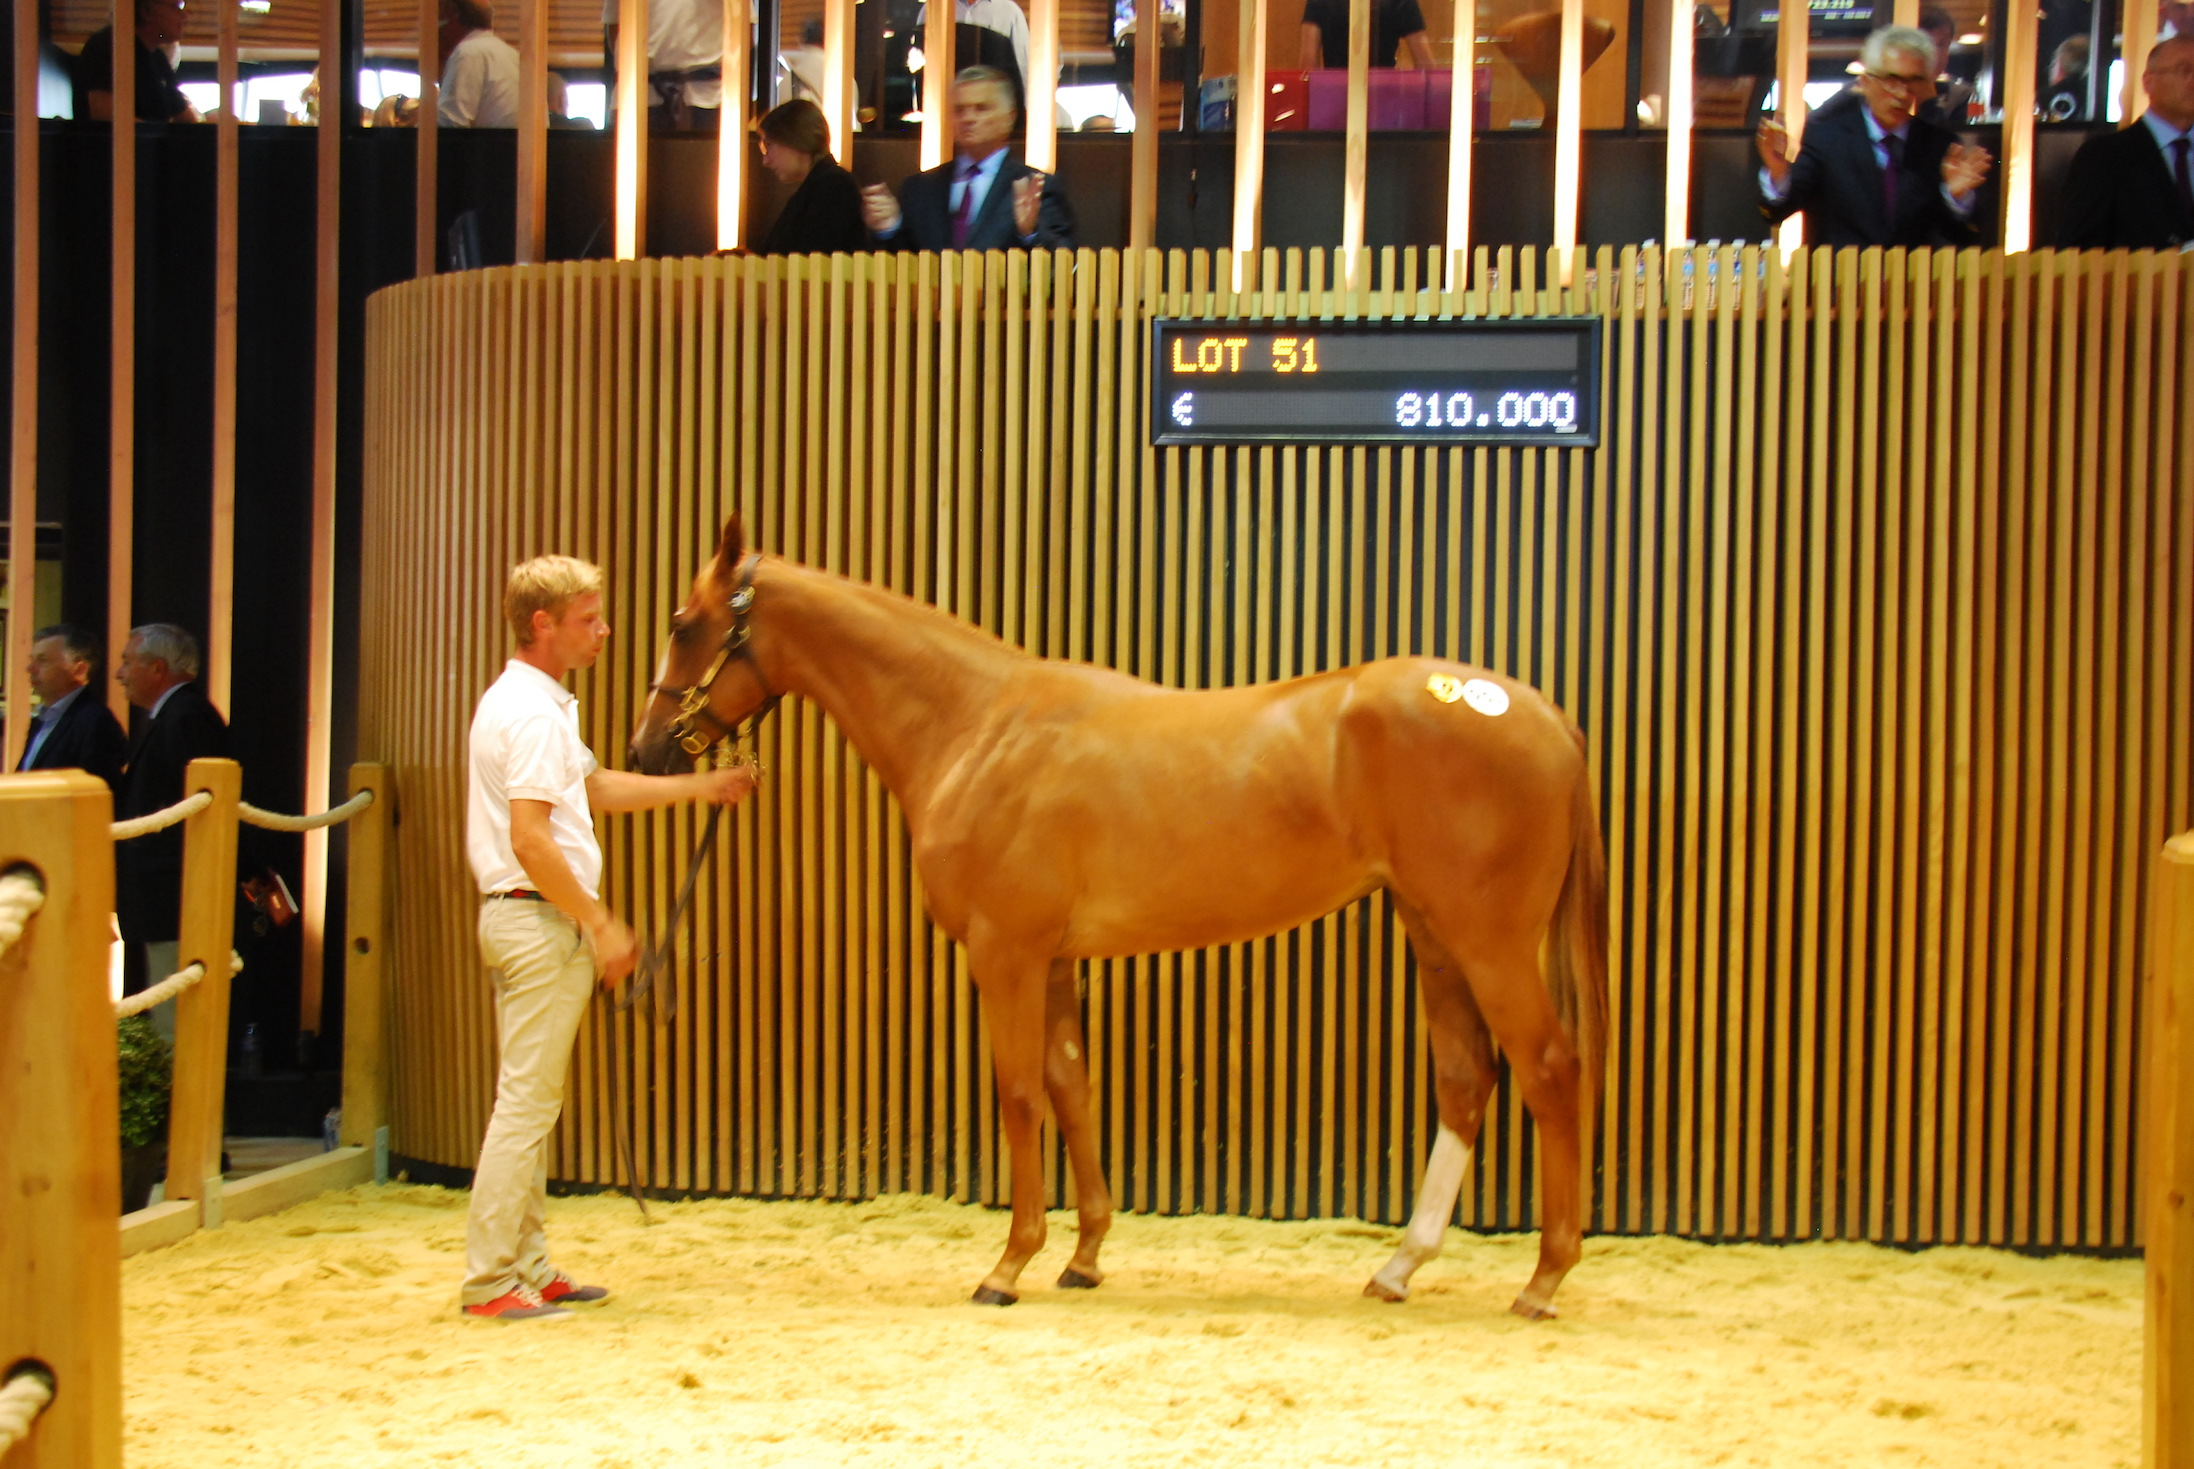 Justin Casse paid €810,000 for this Galileo filly out of Tender Morn, the highest priced yearling on the first day of the  Arqana sale. Photo: John Gilmore